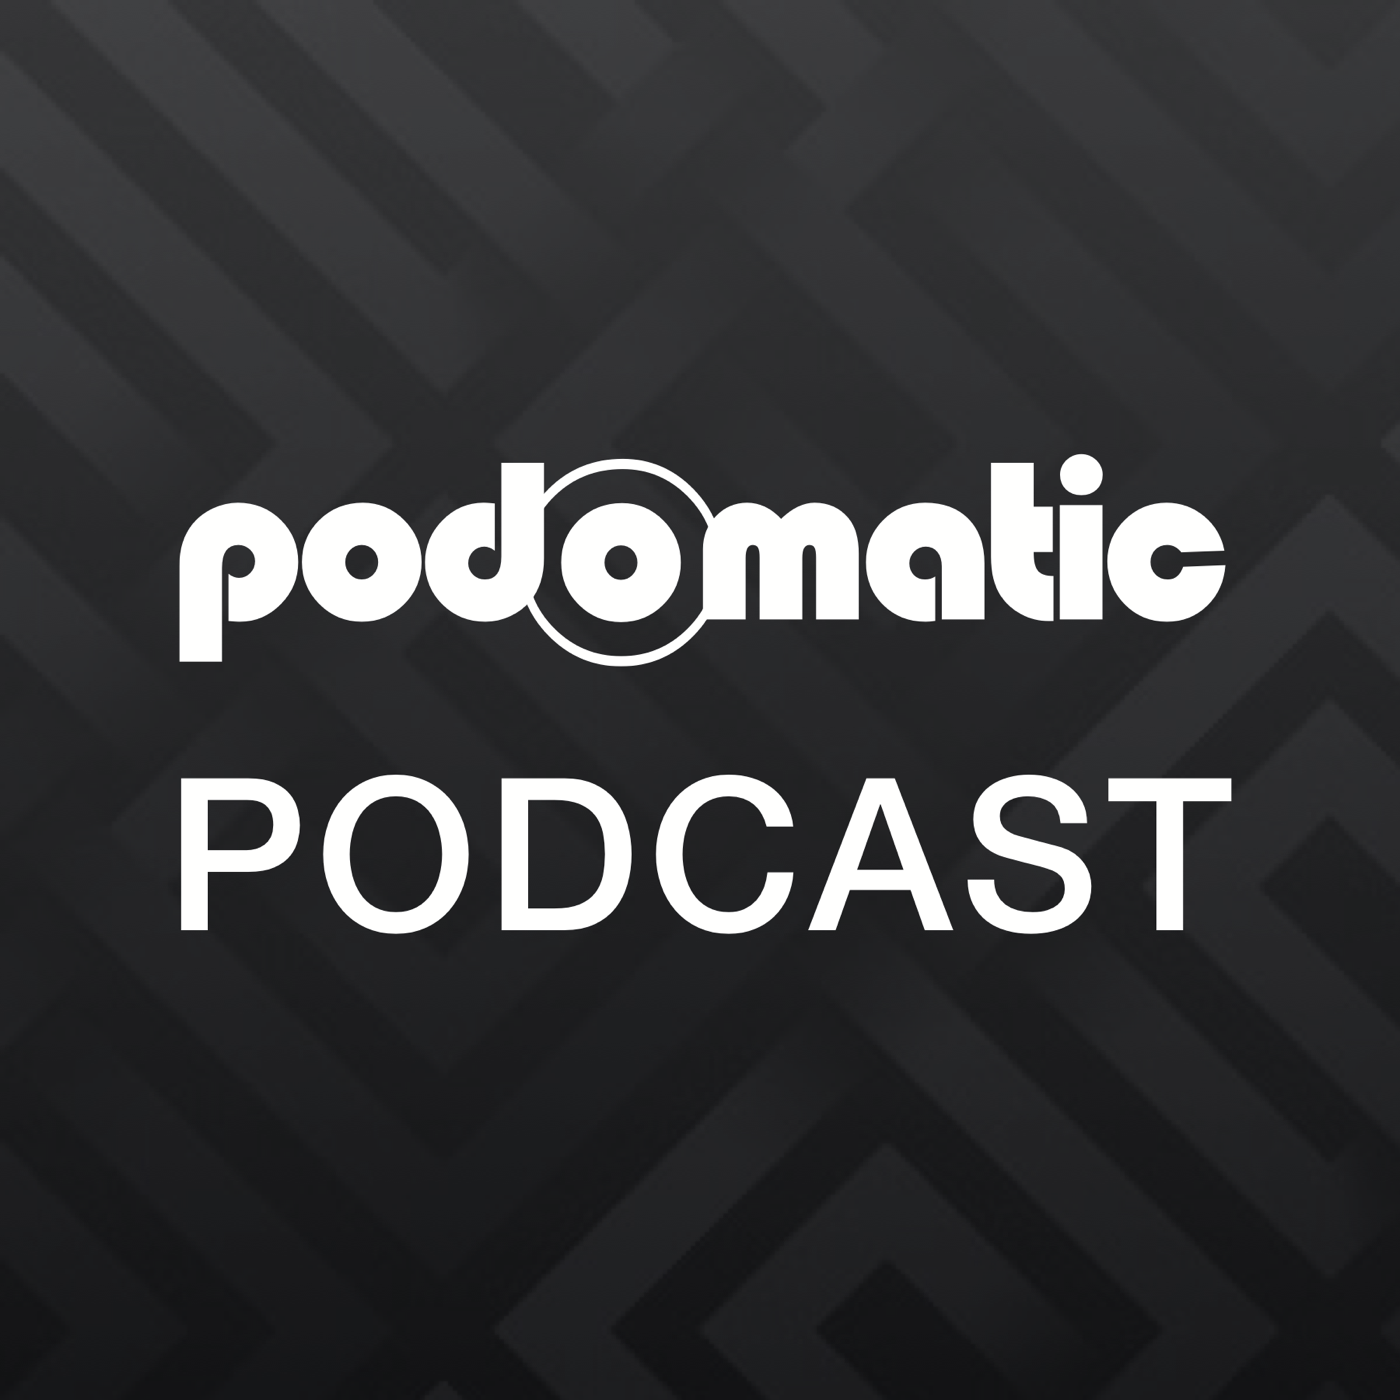 All Nations Church's Podcast